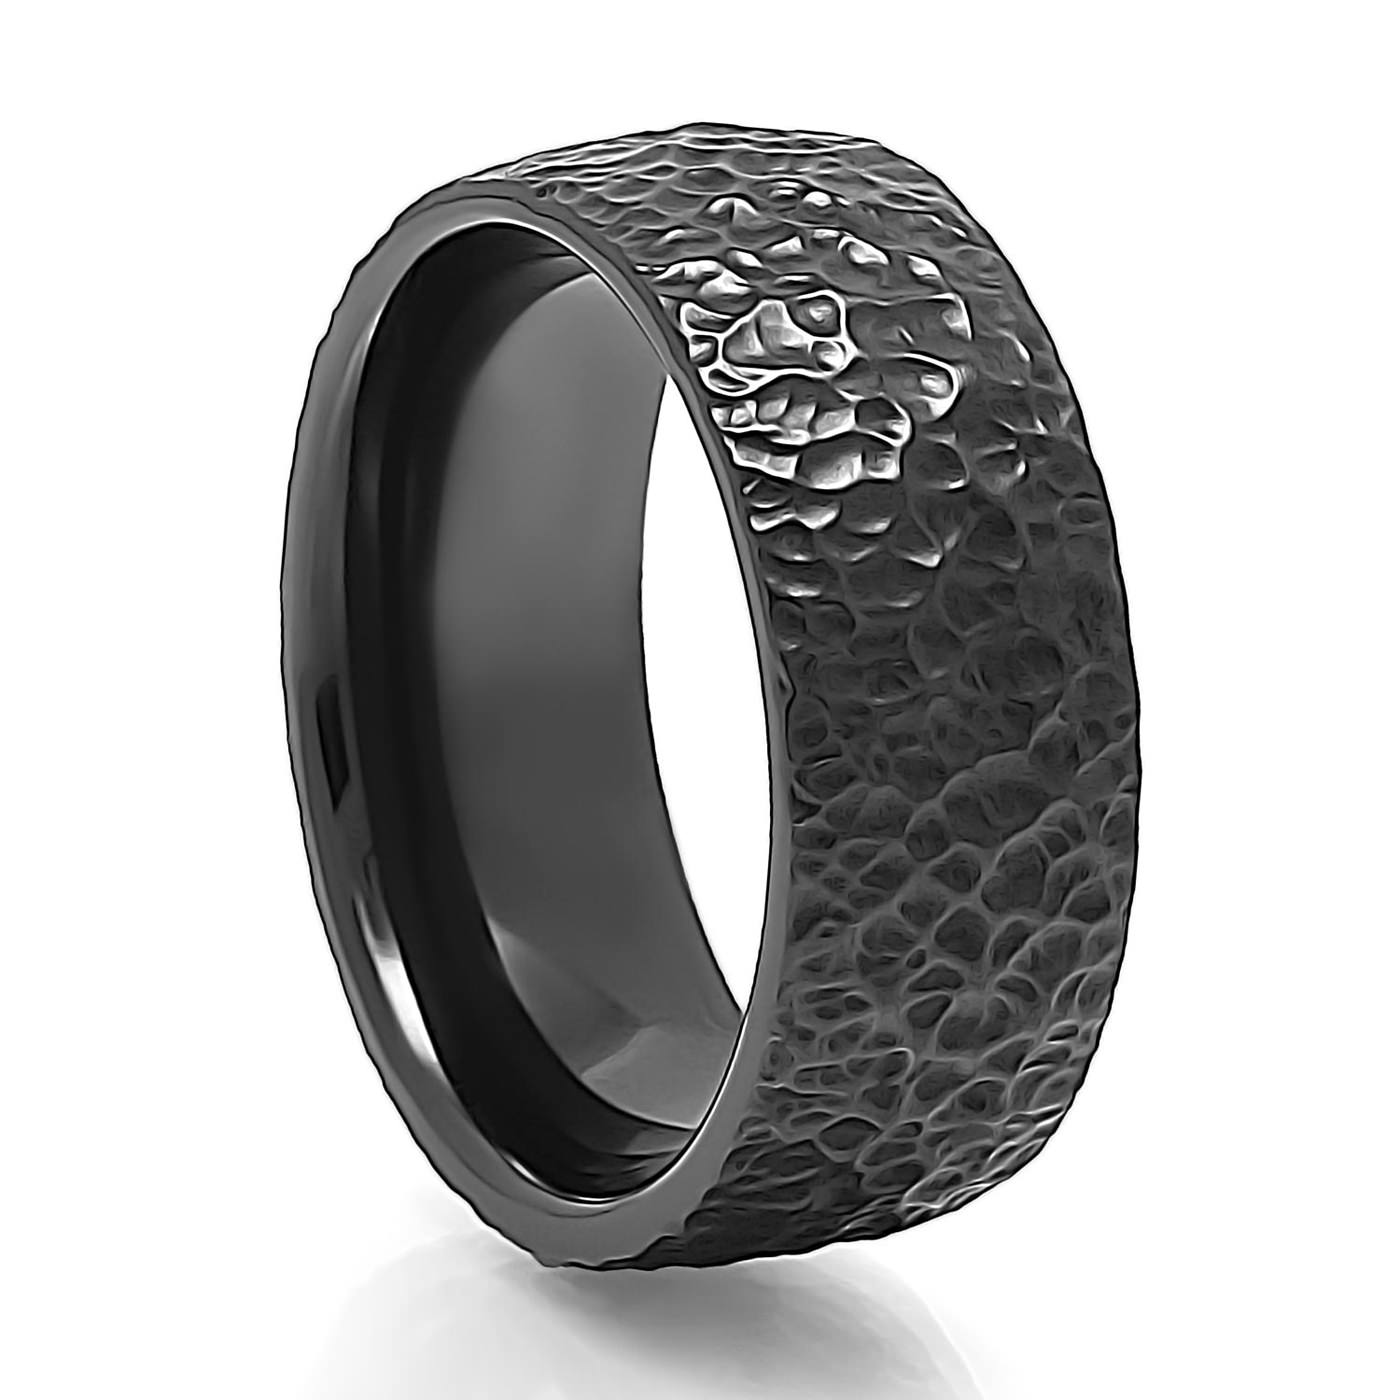 ring wedding non and titanium precious black for bands popular hers gem band his rings most brag strongest expensive her inlay with mens boston toughest best men blue metal